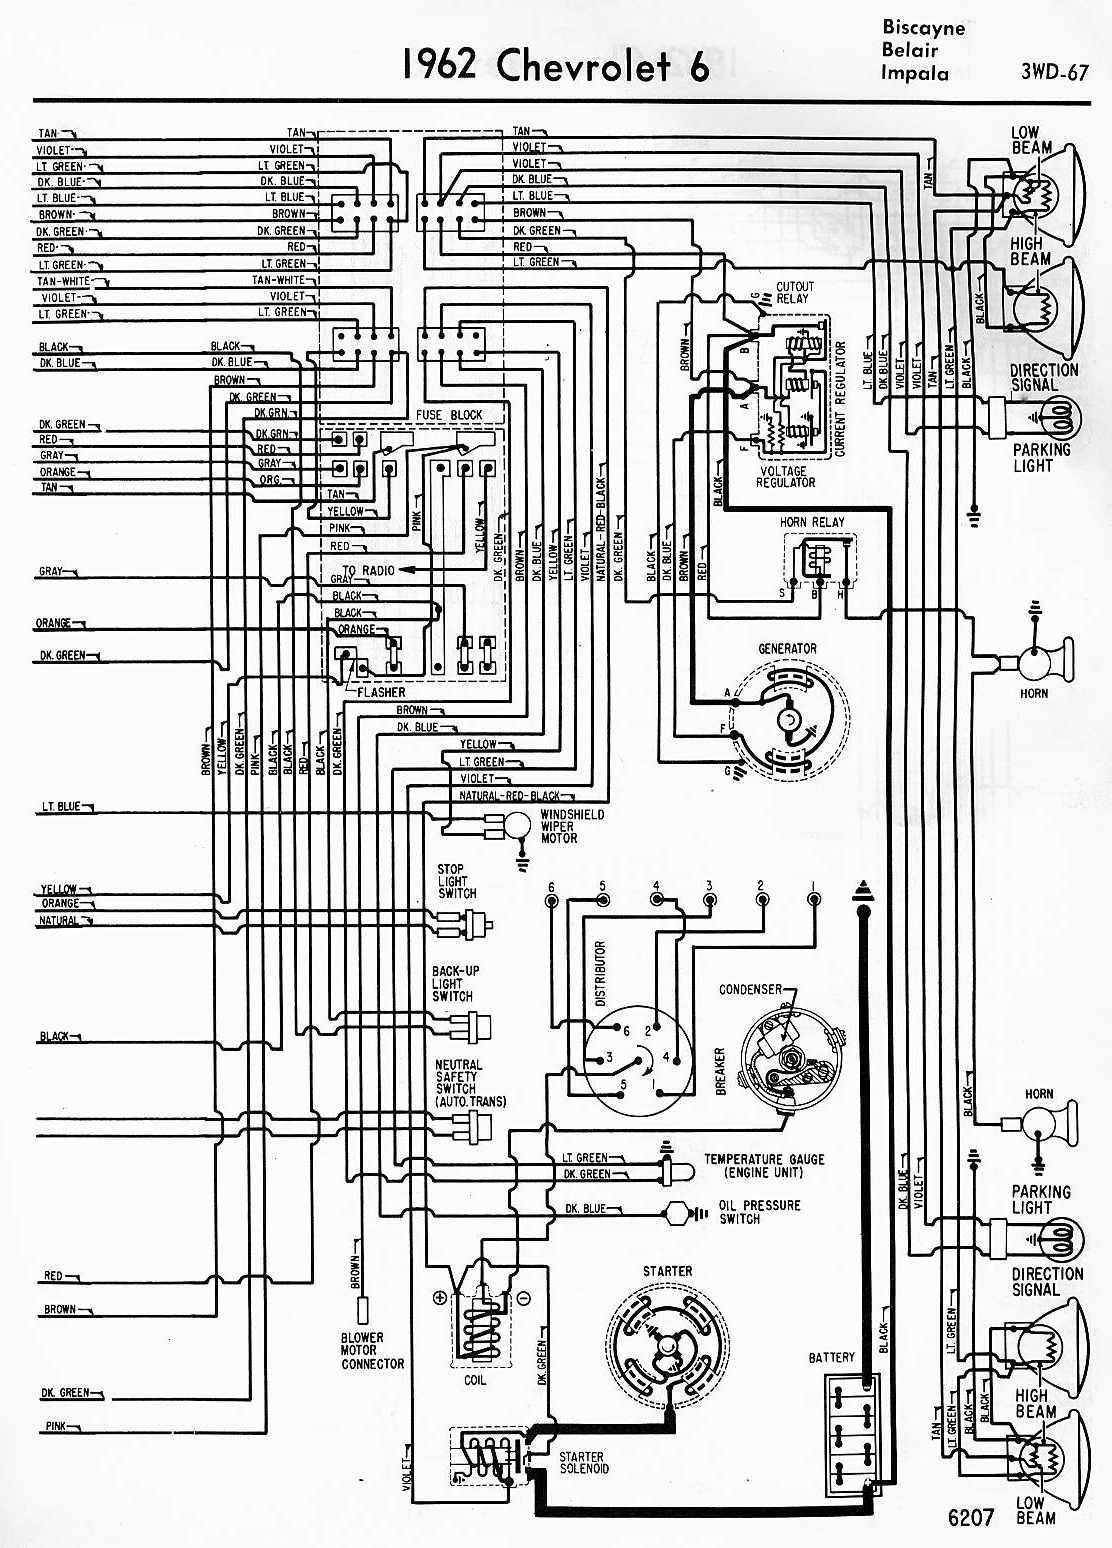 small resolution of 1966 chevrolet impala wiring diagram free picture wiring diagram jeep wrangler wiring schematic 1966 impala wire